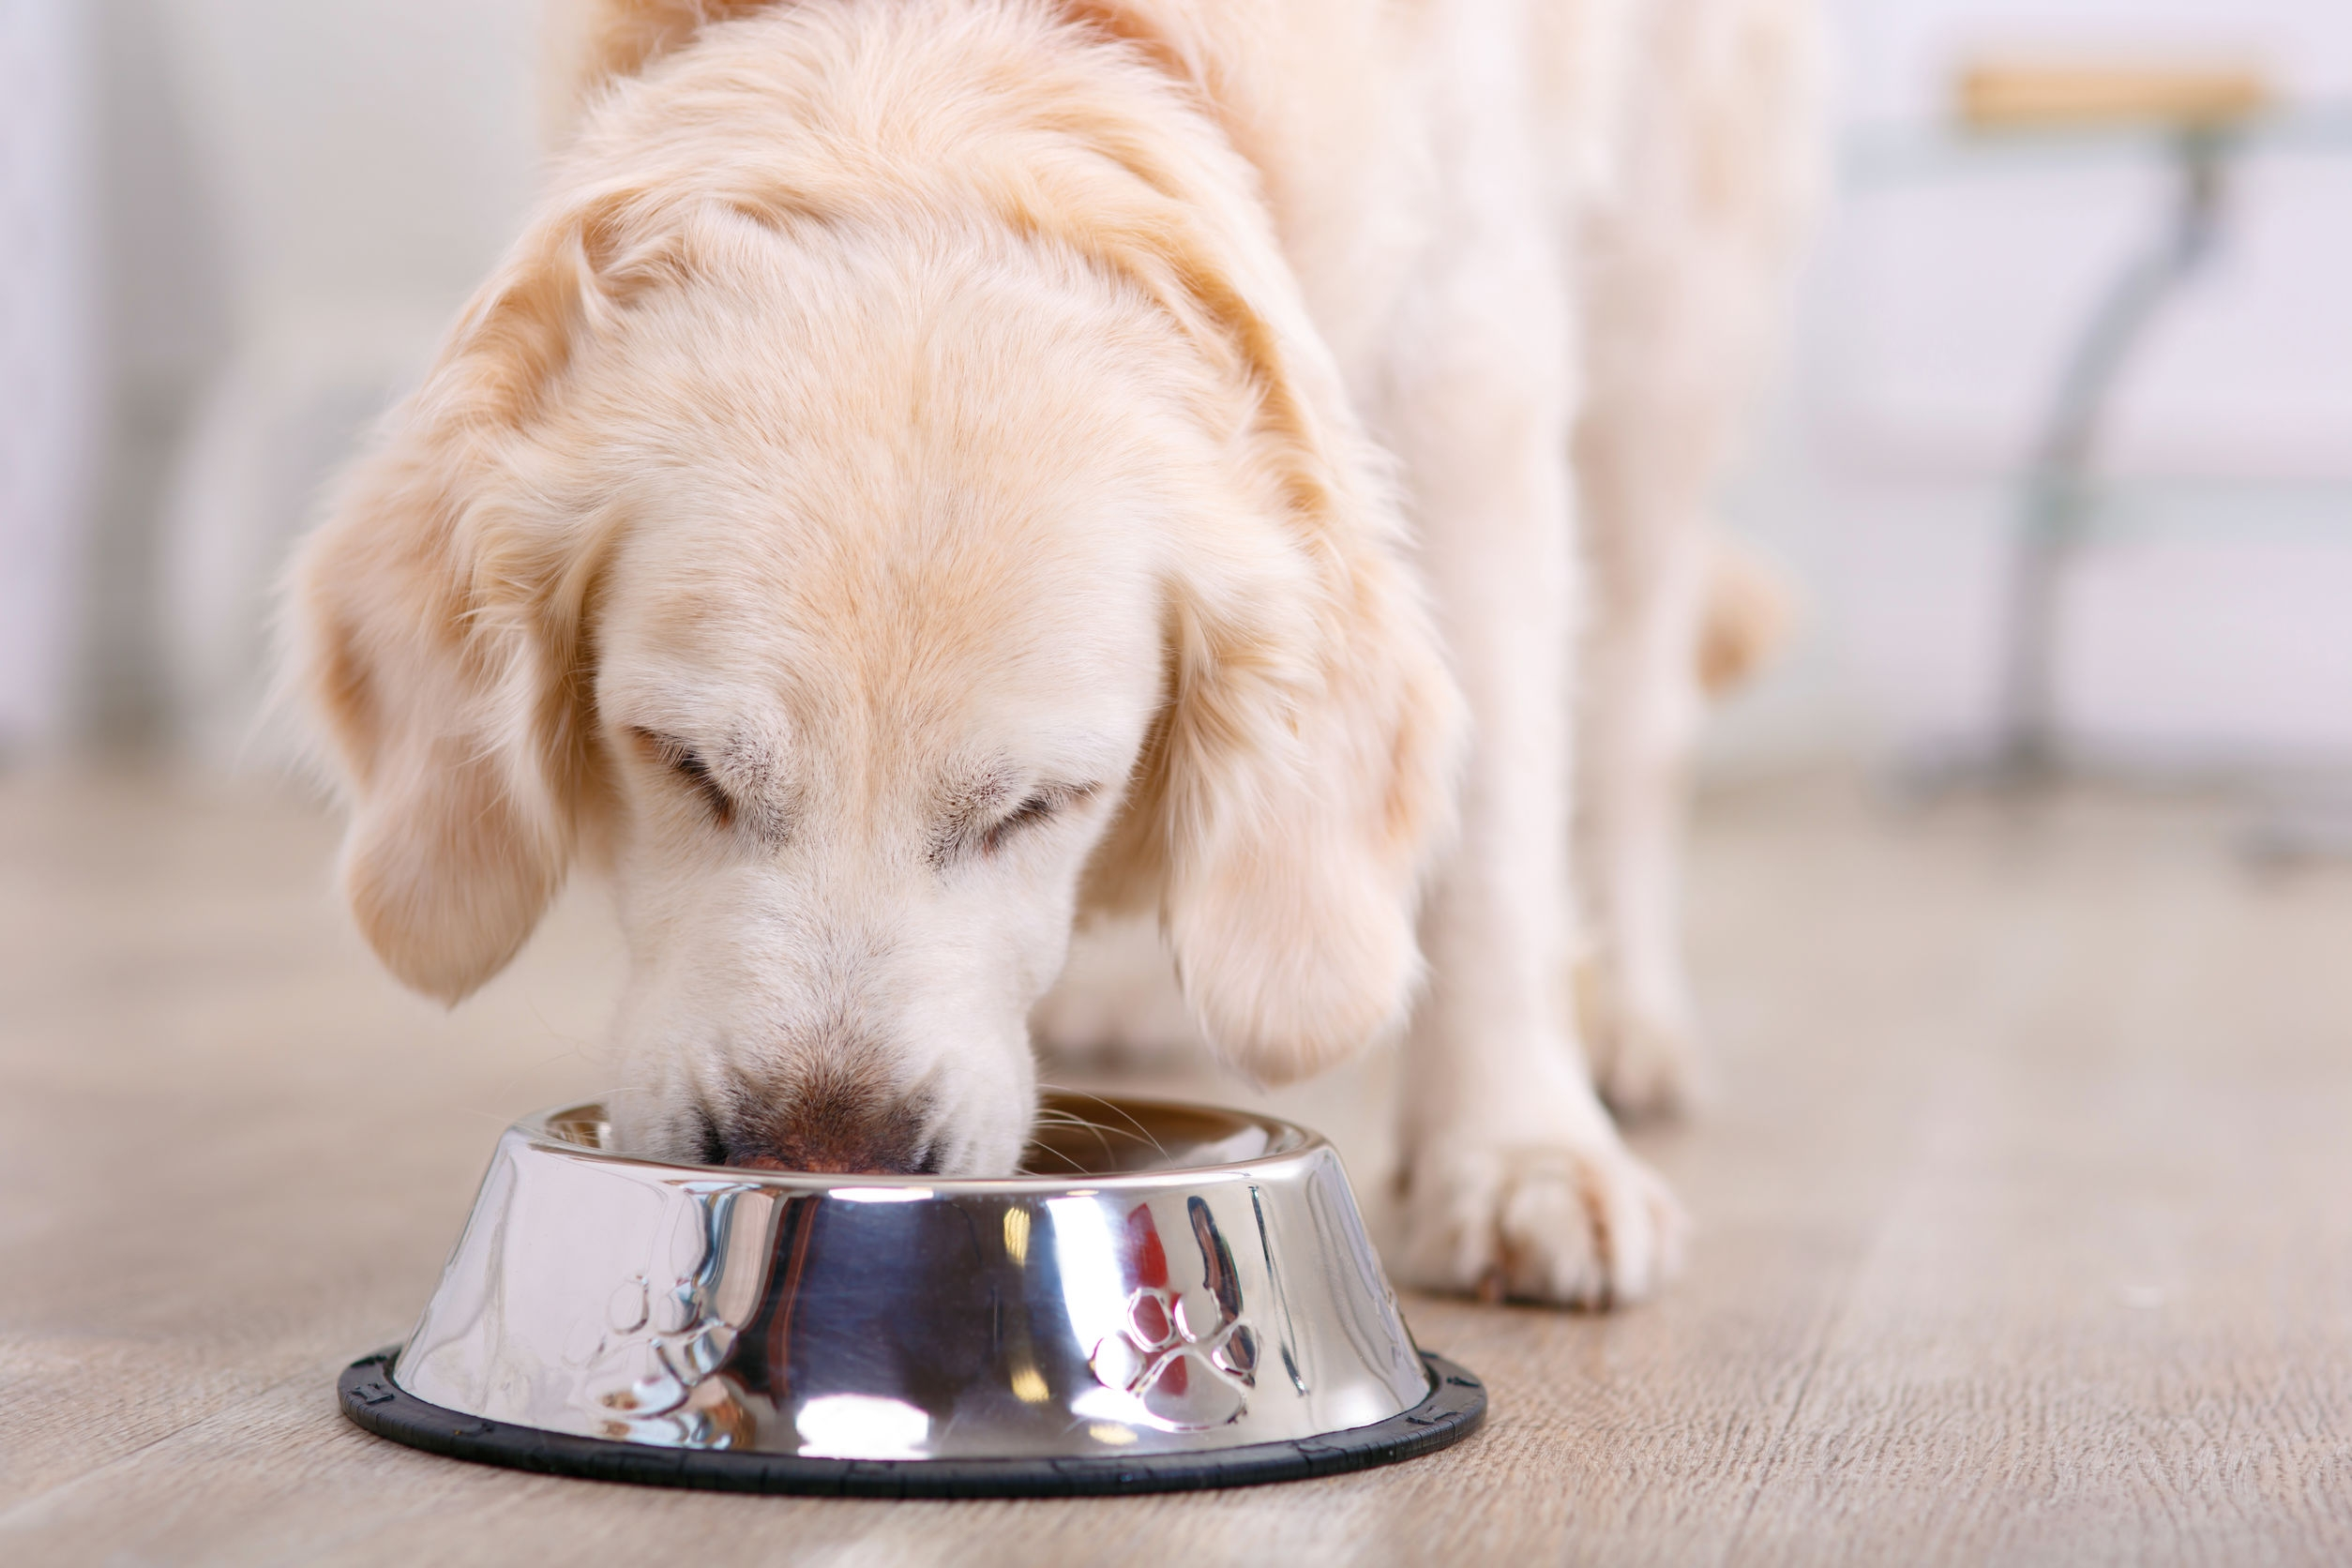 golden retriever eating dog food from a metal food bowl in the kitchen